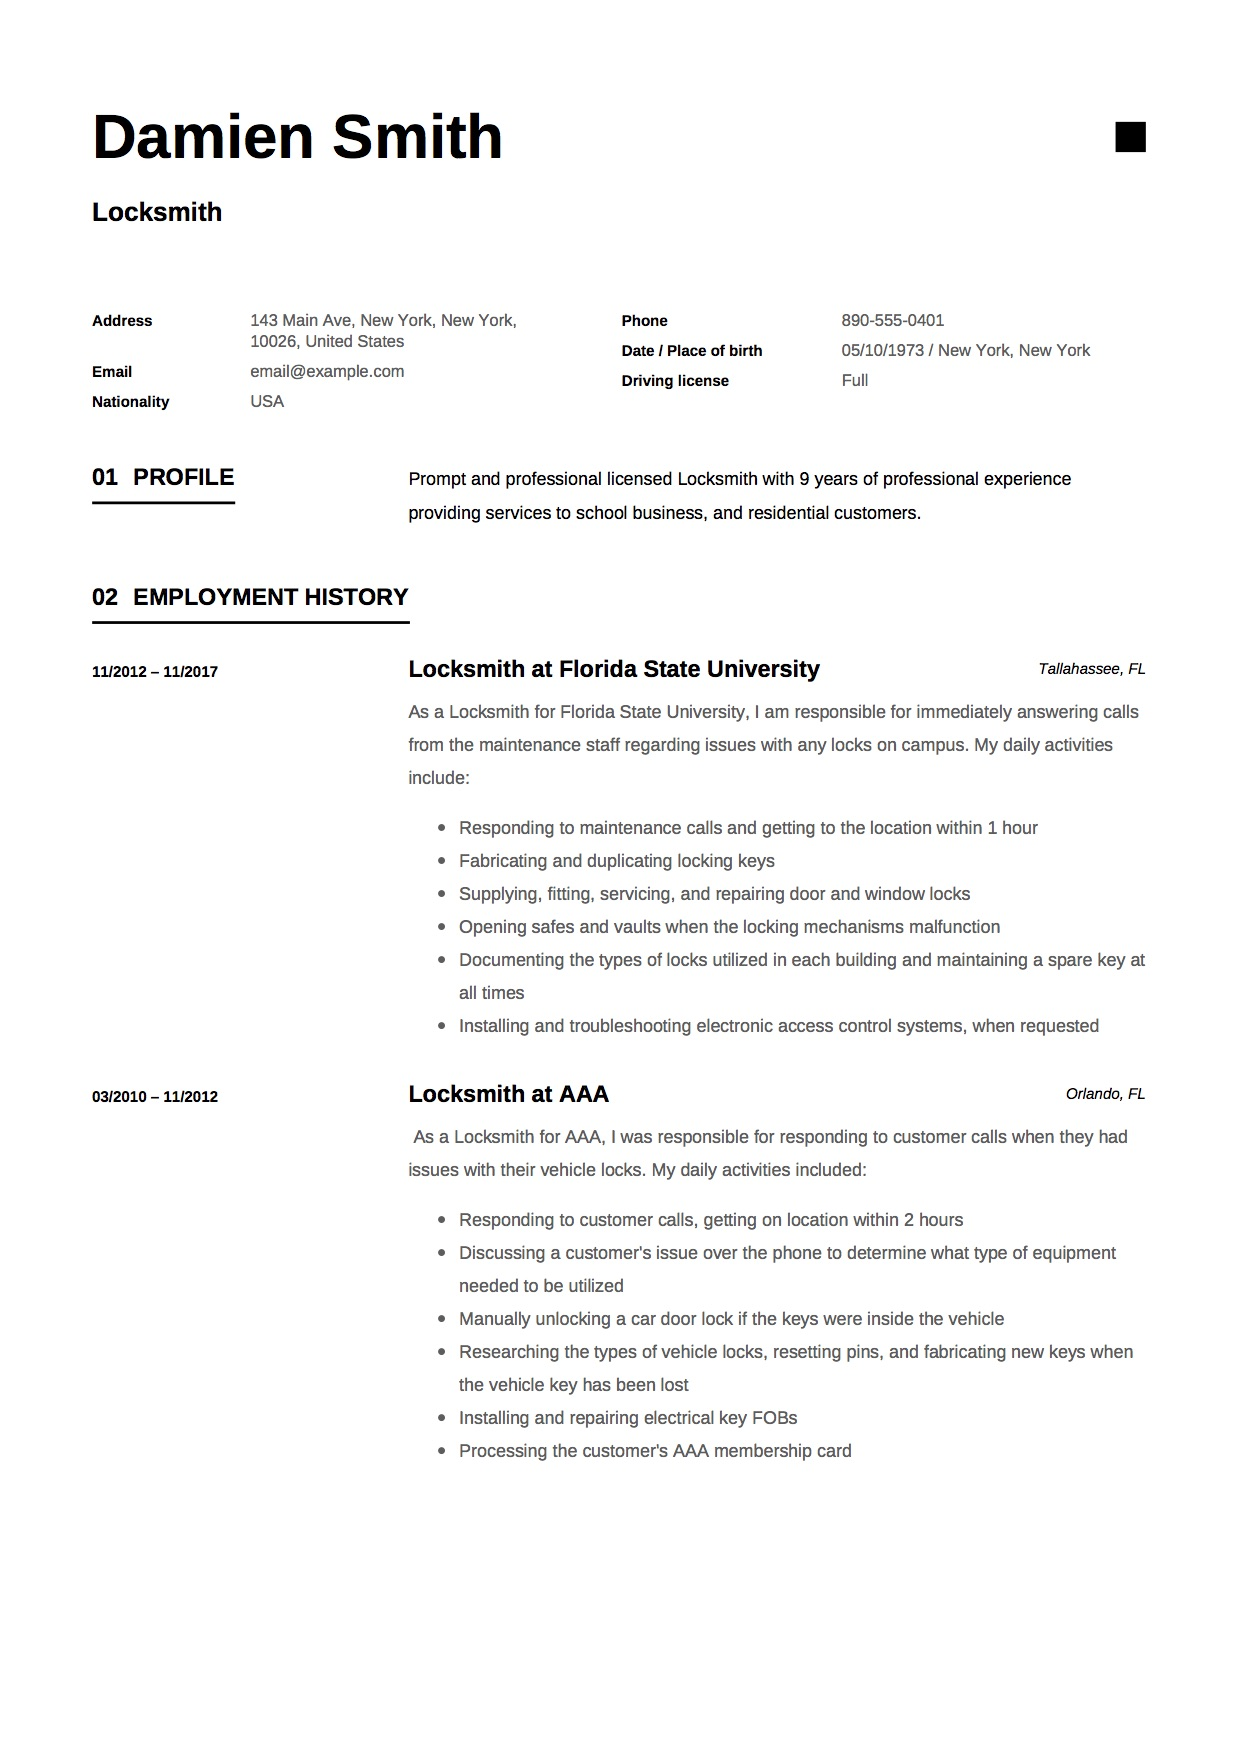 Damien Smith - Resume - Locksmith-12